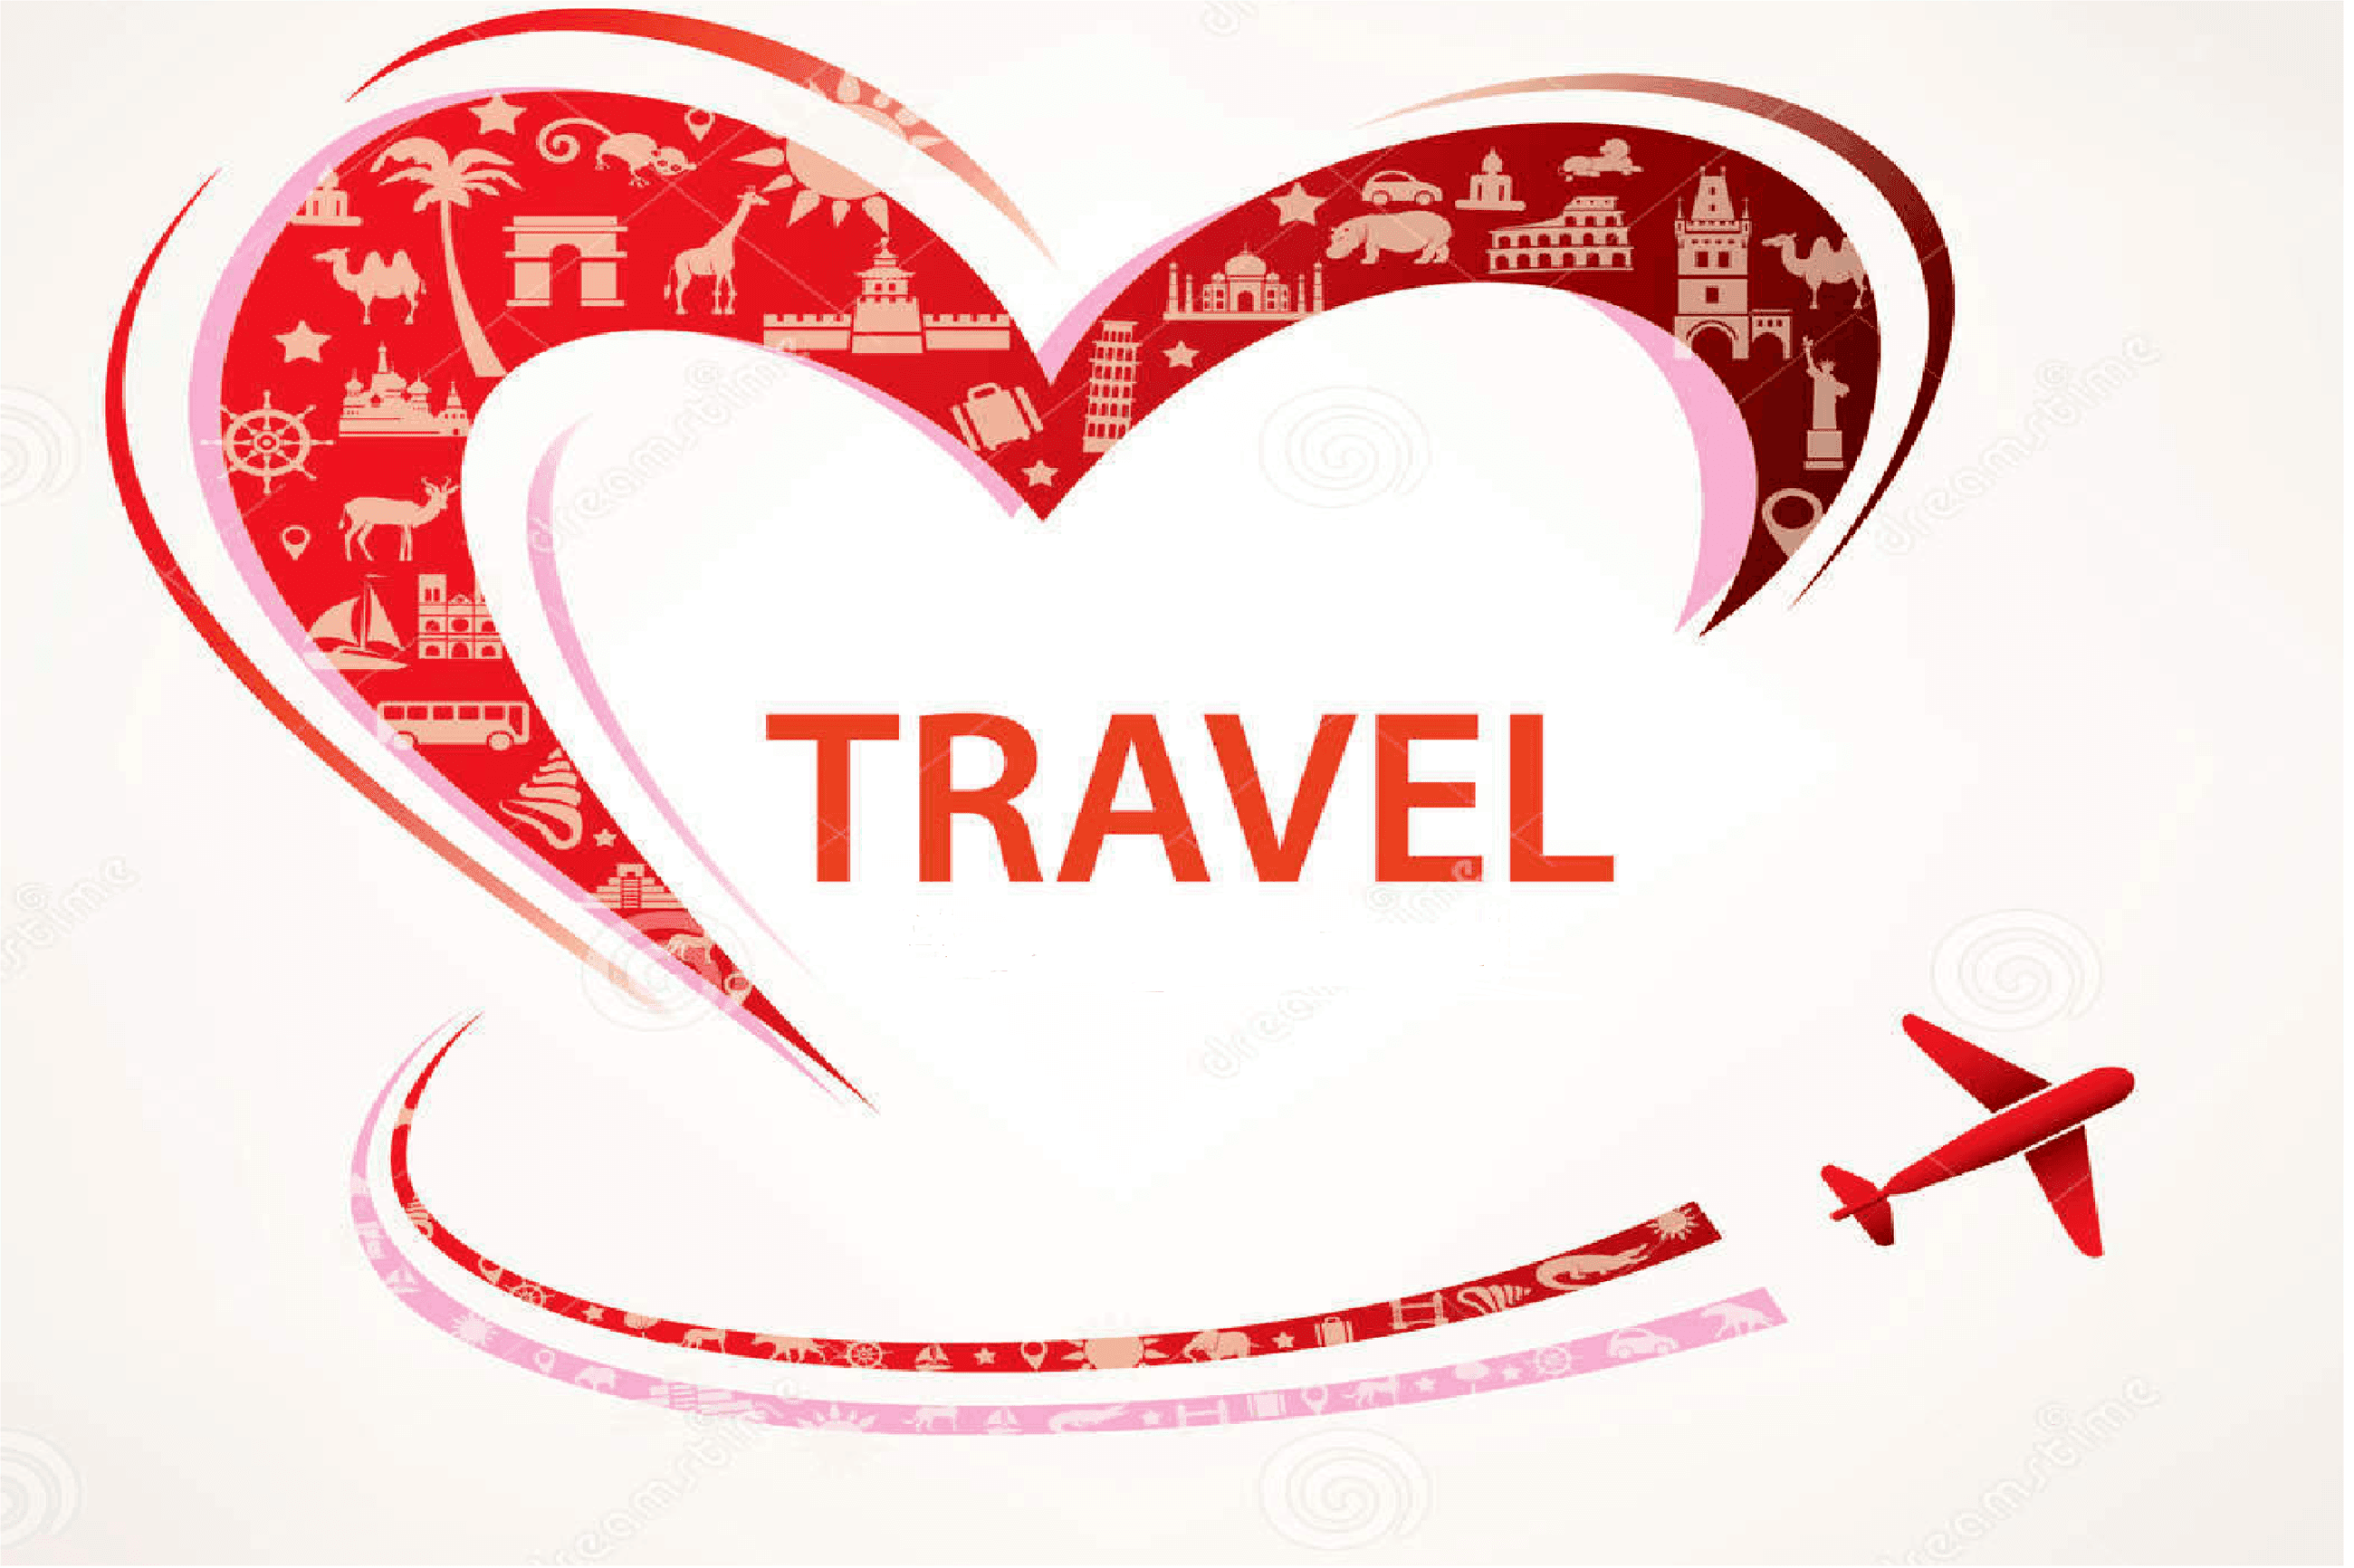 Travel-heart